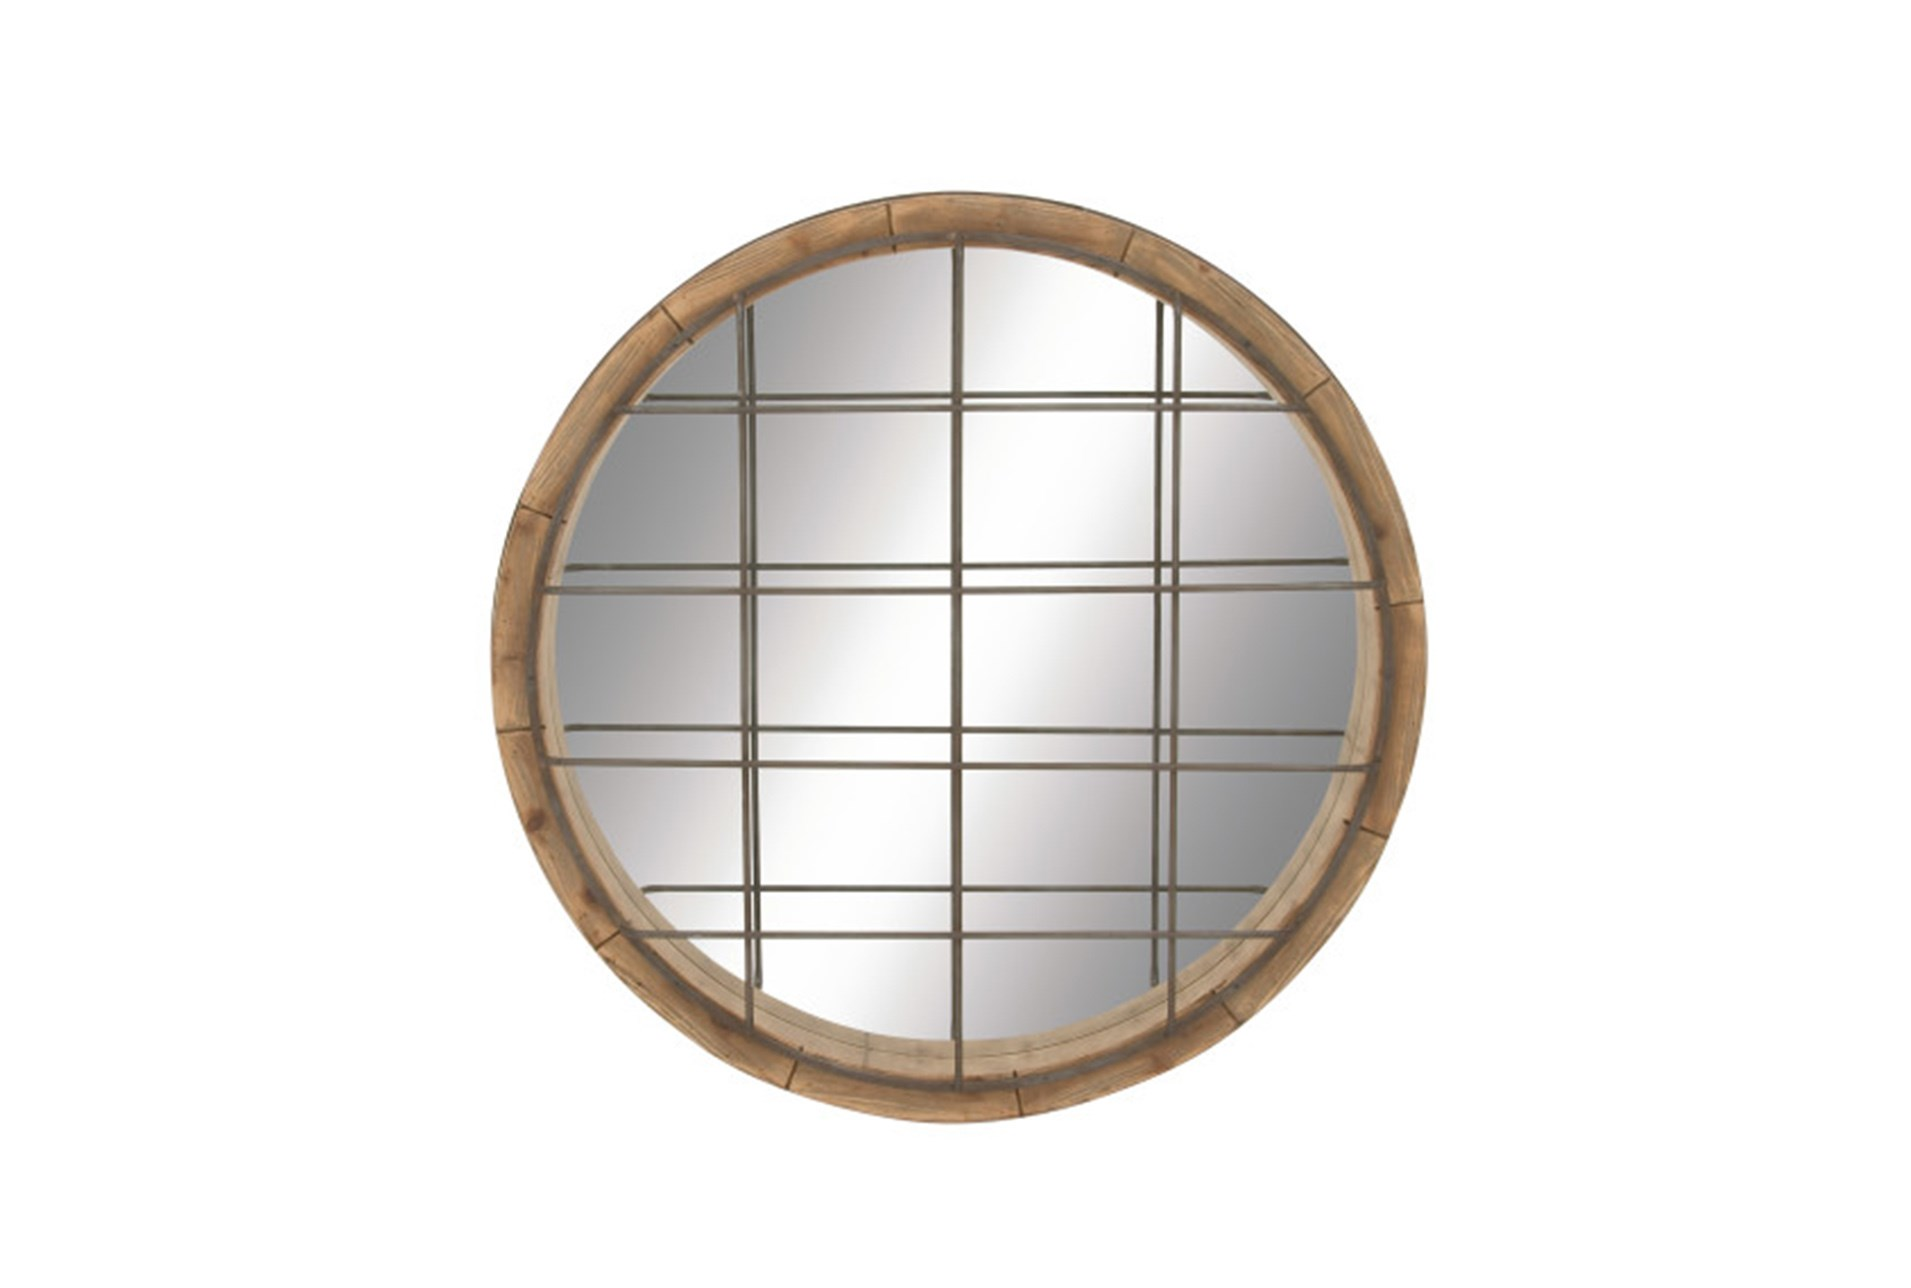 48 inch mirror bath vanity 48 inch wood metal grid wall mirror qty 1 has been successfully added to your cart living spaces